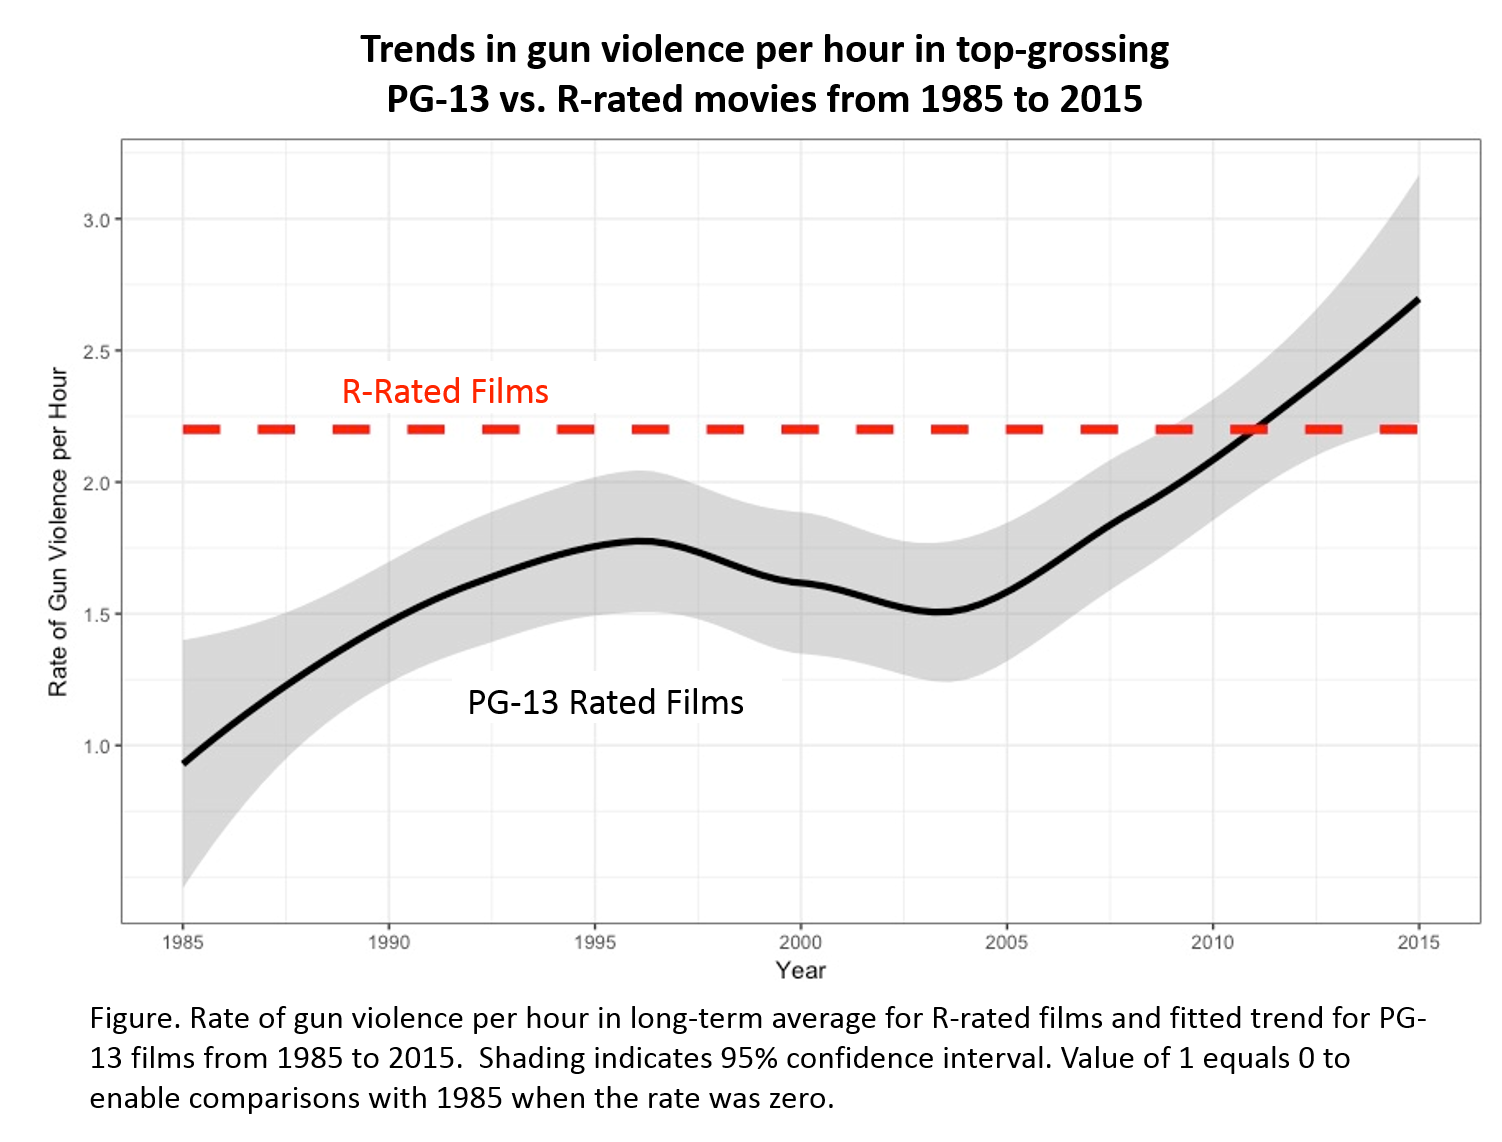 Figure: Rate of gun violence per hour in long-term average for R-rated films and fitted trend for PG-13 films from 1985 to 2015. Shading indicates 95% confidence interval. Value of 1 equals 0 to enable comparisons with 1985 when the rate was zero.